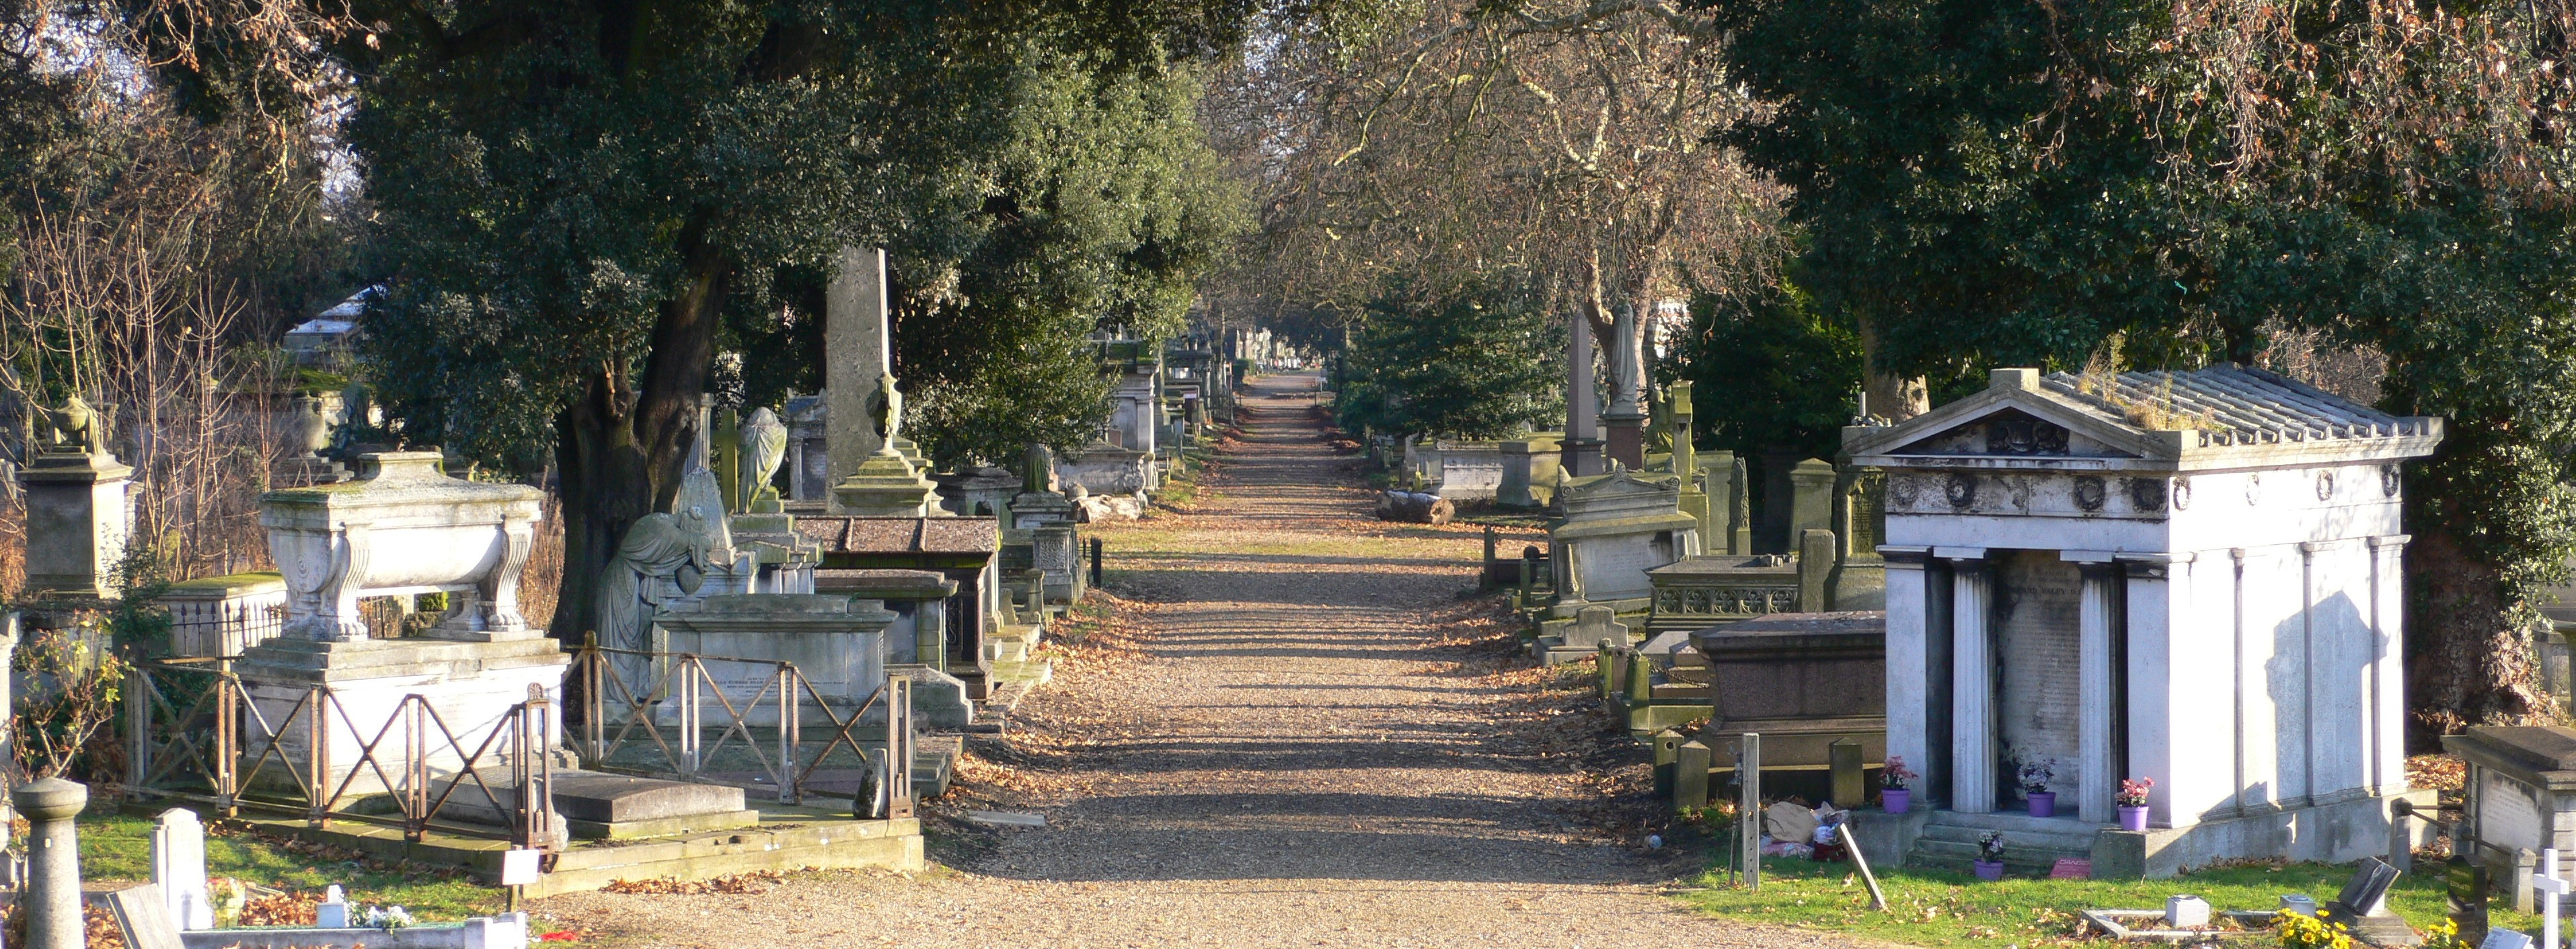 kensal_green_cemetery_view_december_2005-e1457998568893